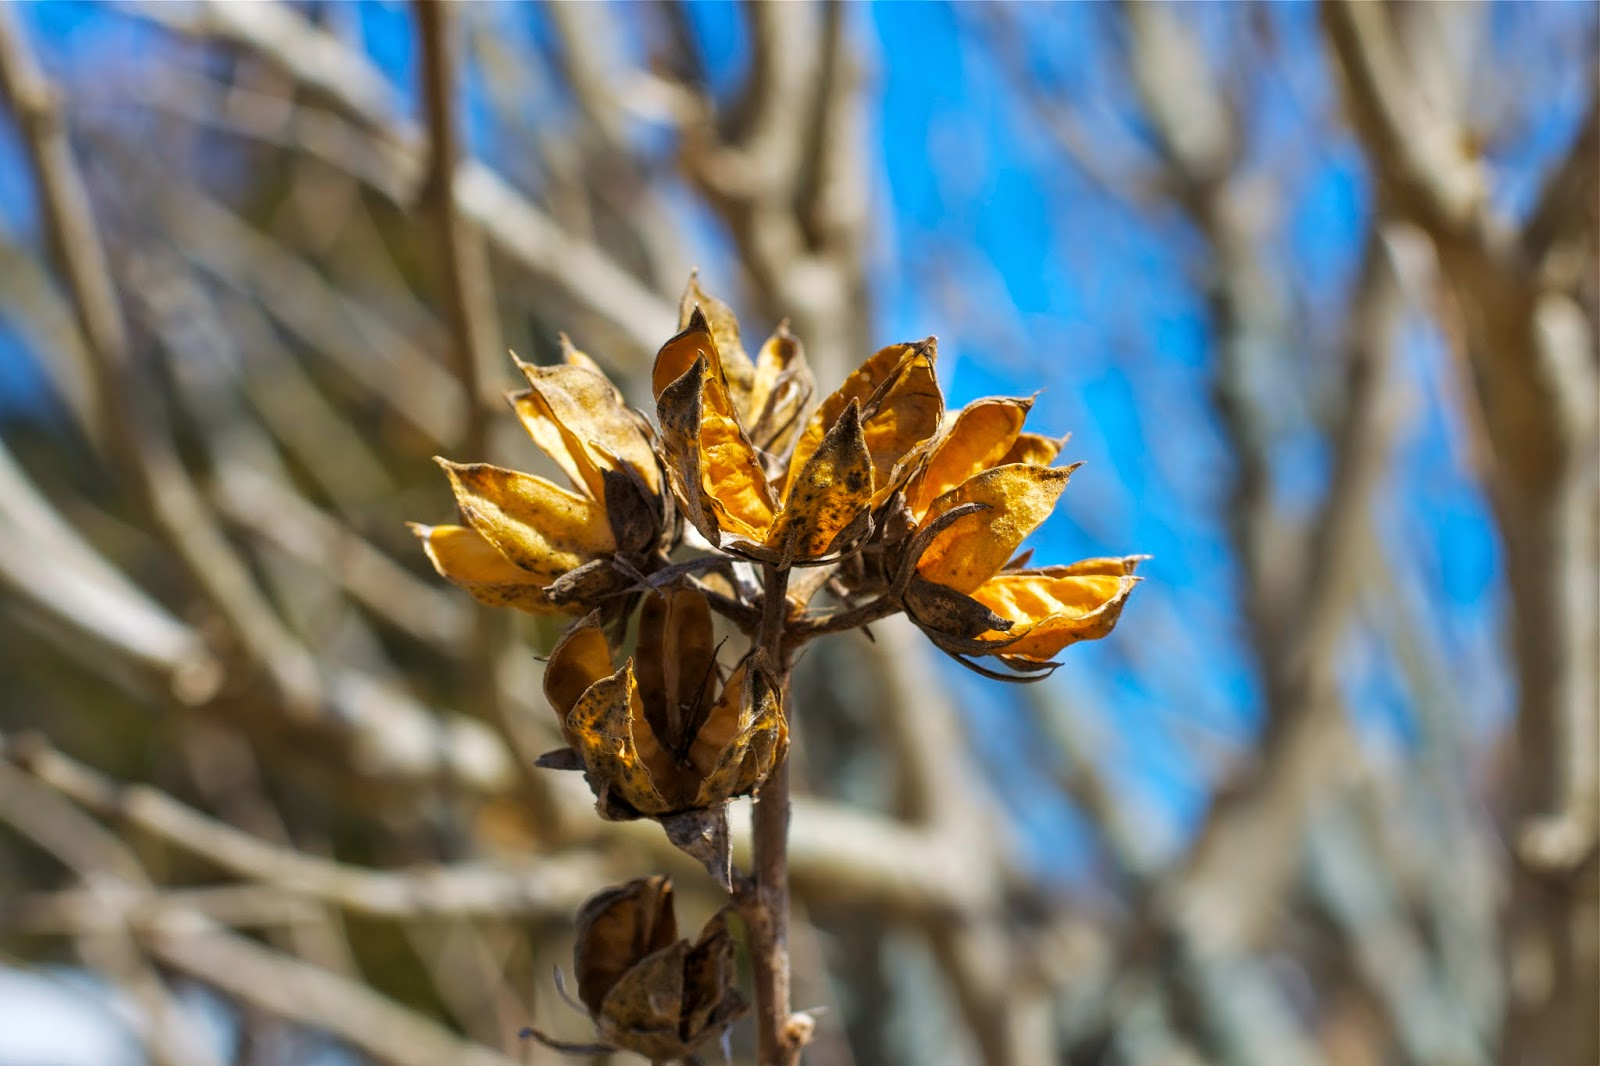 Seed pods, waiting for spring buds.